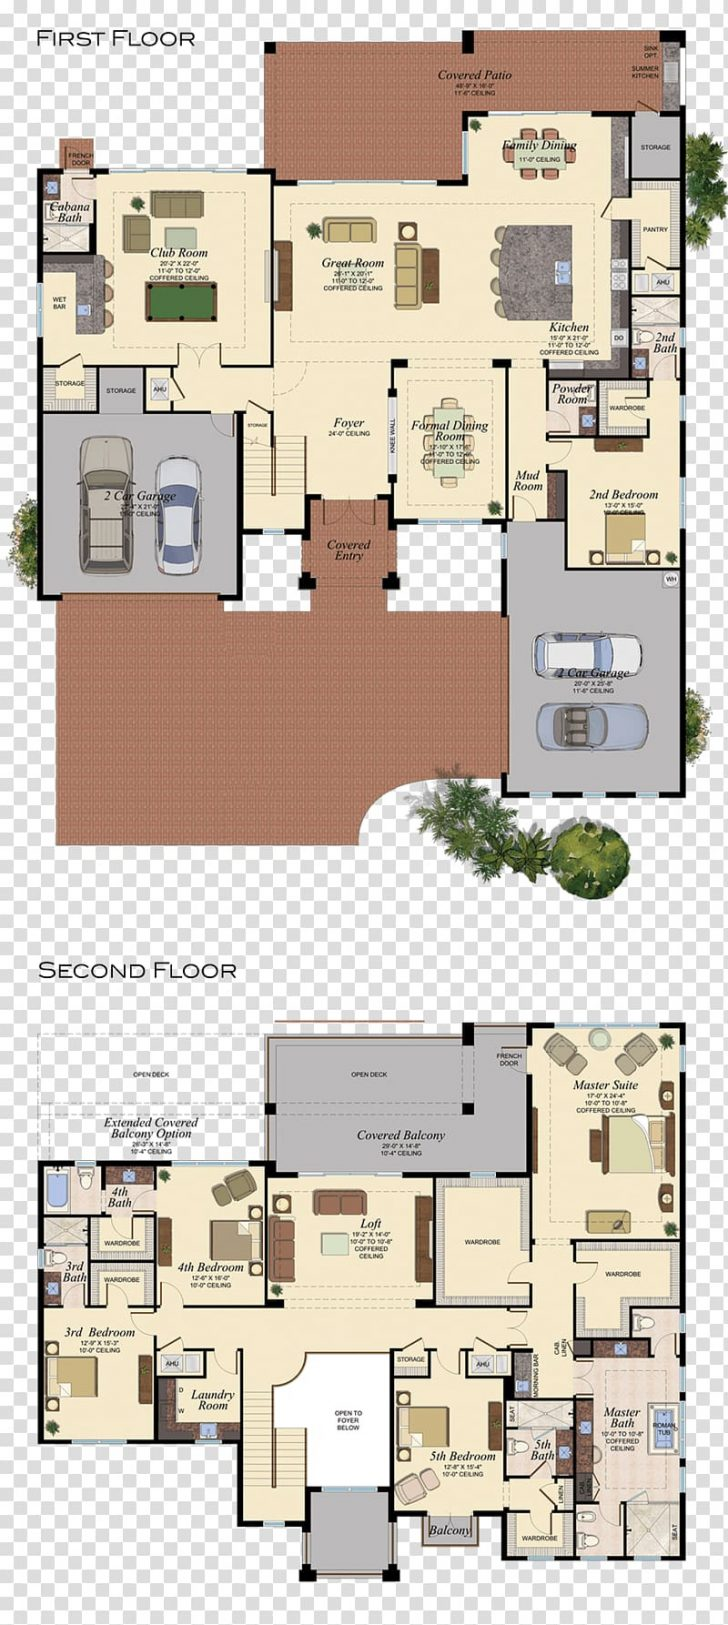 House Plans with Interior Pictures 2020